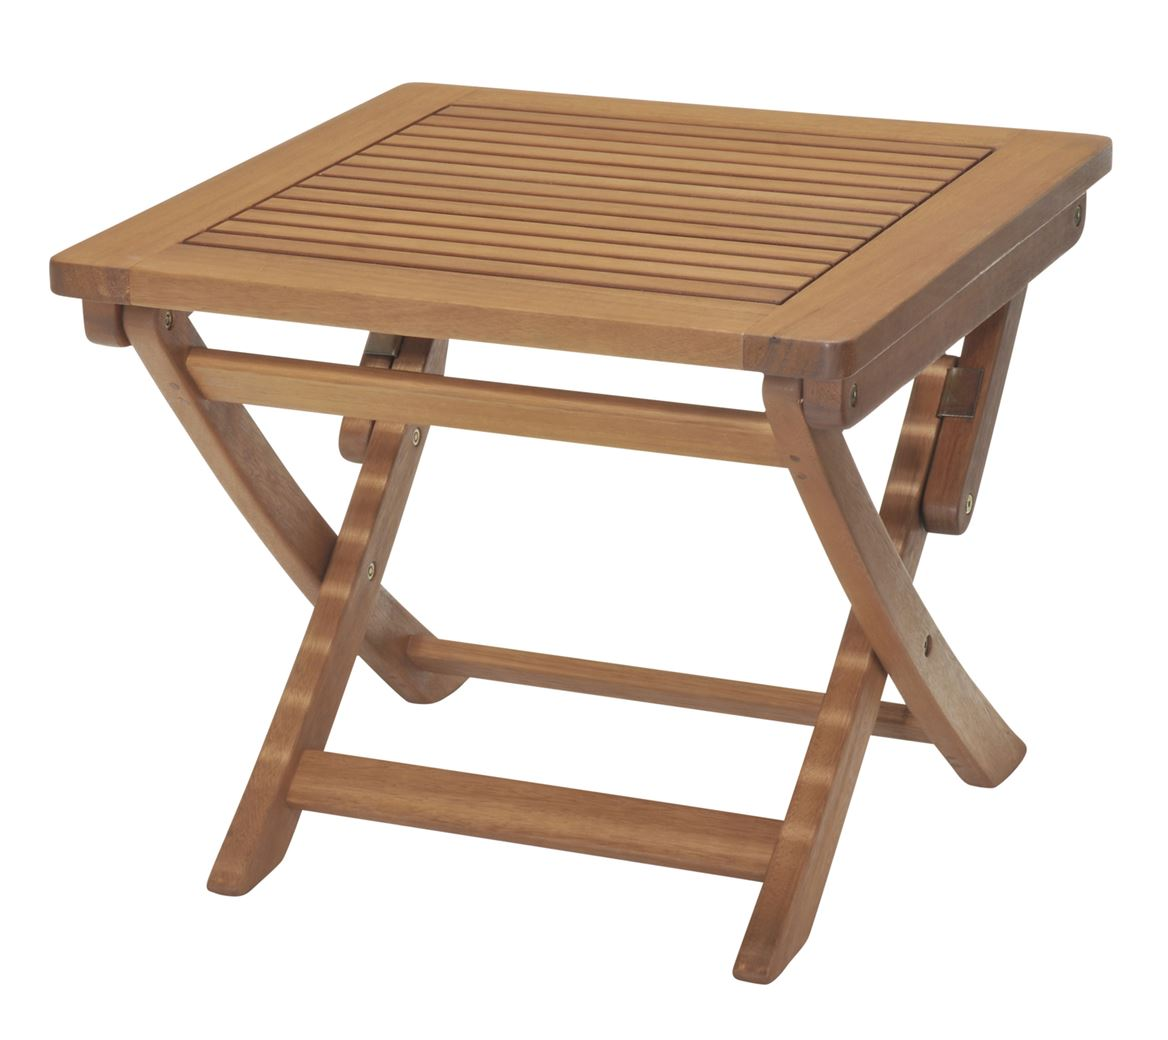 ATLANTIC Table pliable_408219_1.jpg